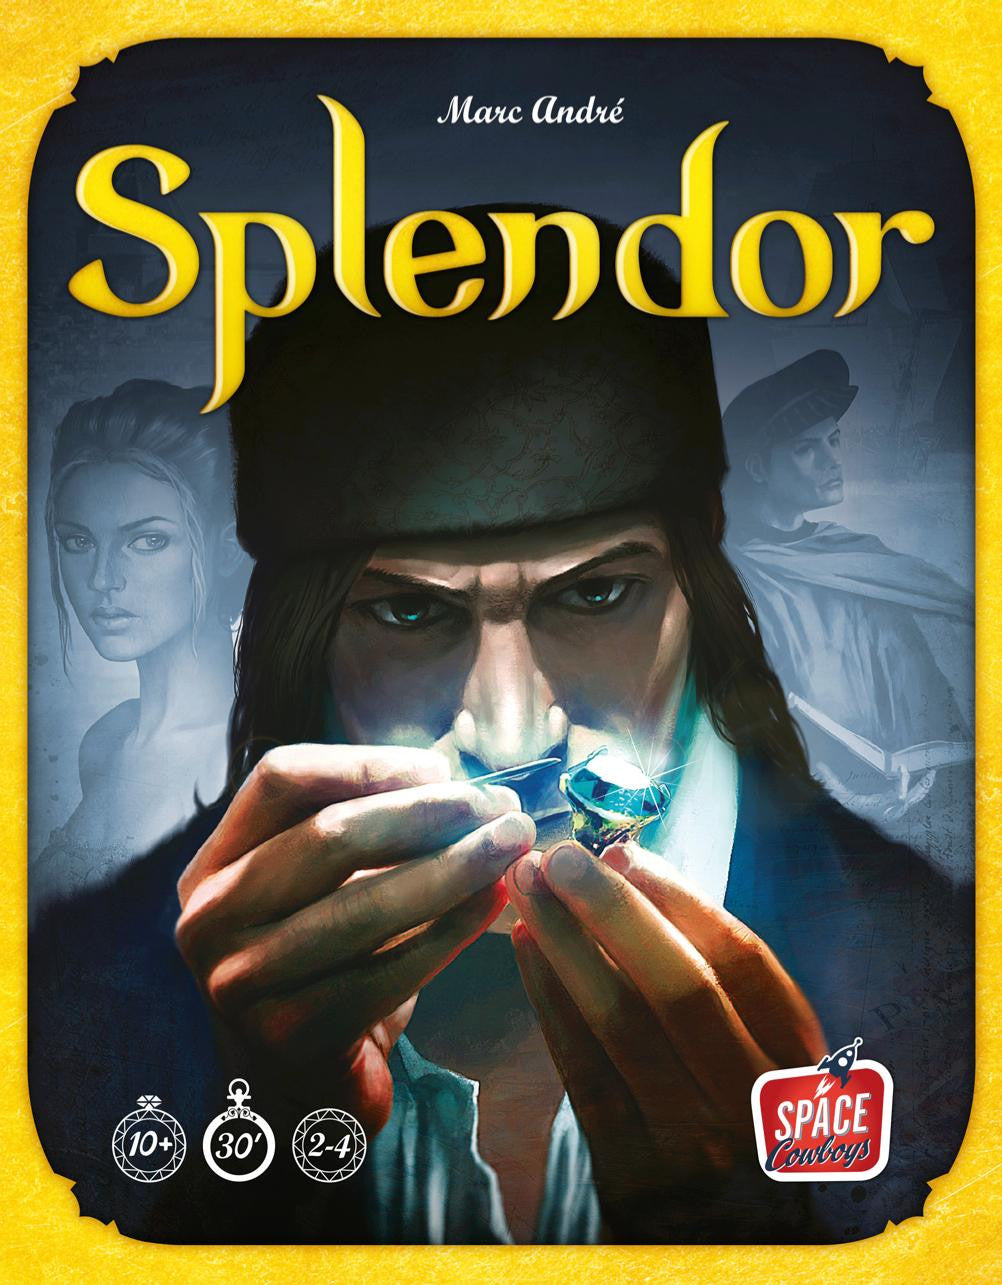 Splendor is actually one of my favorite games to teach!